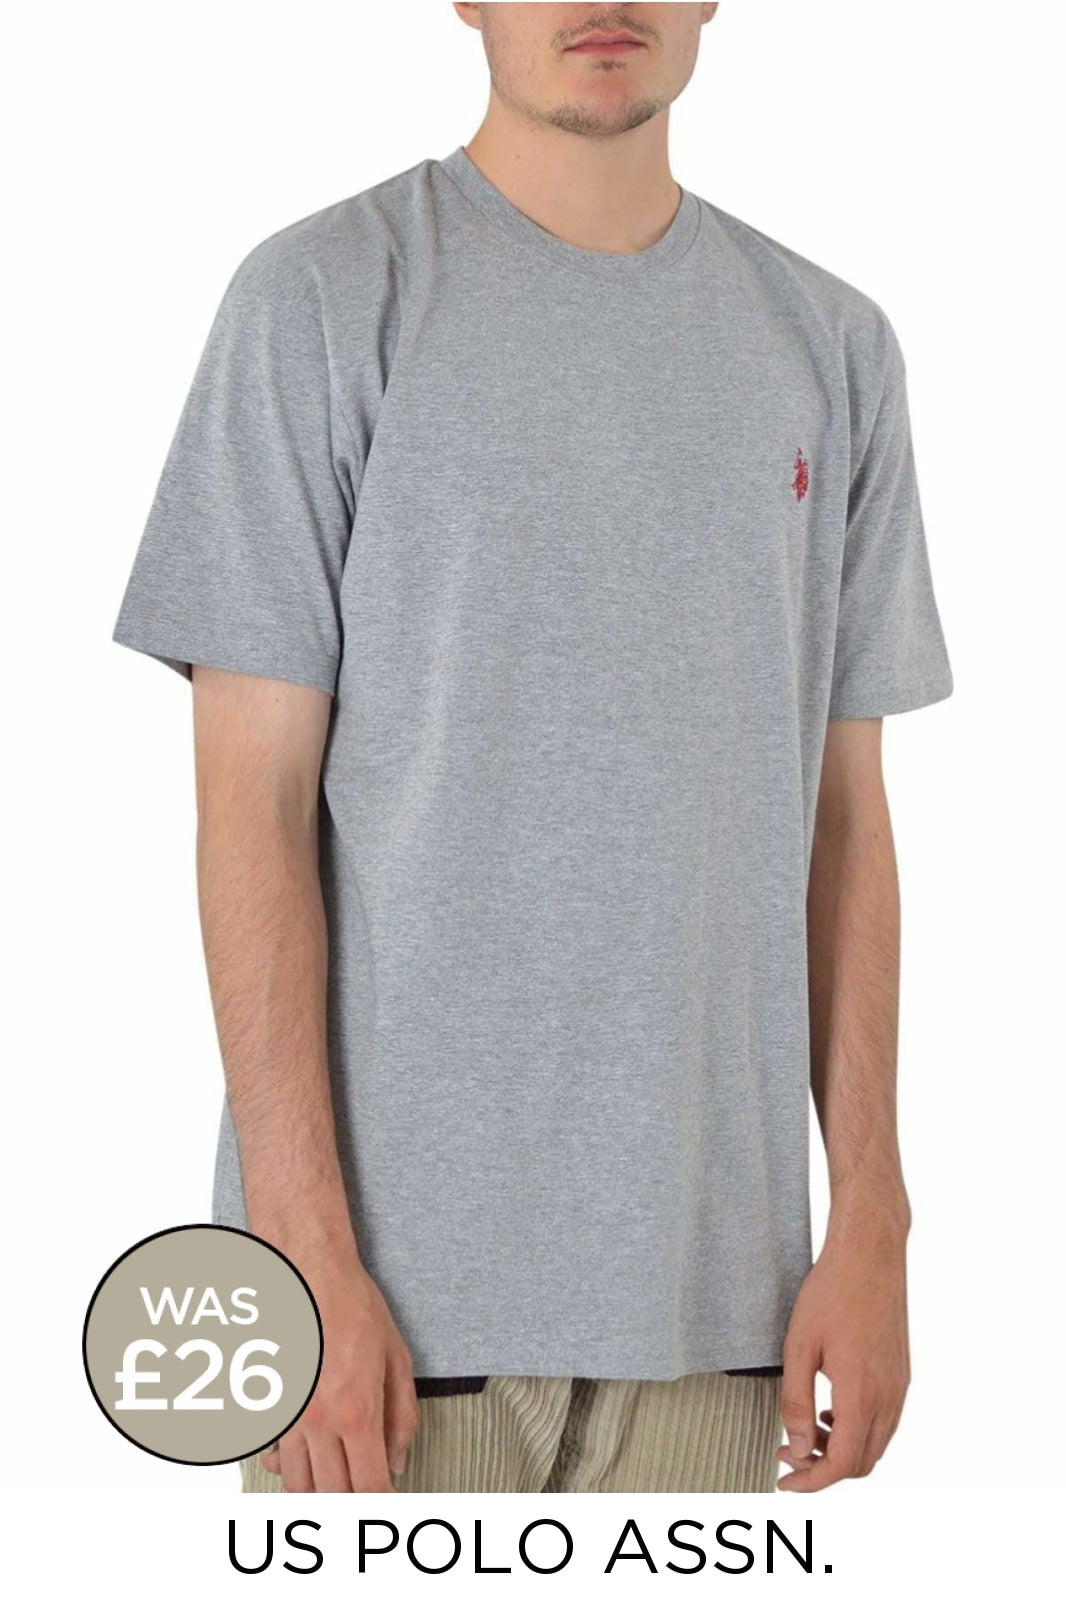 US Polo Assn. Cotton Crew Neck T Shirt | Large / Charcoal Grey Secret Label